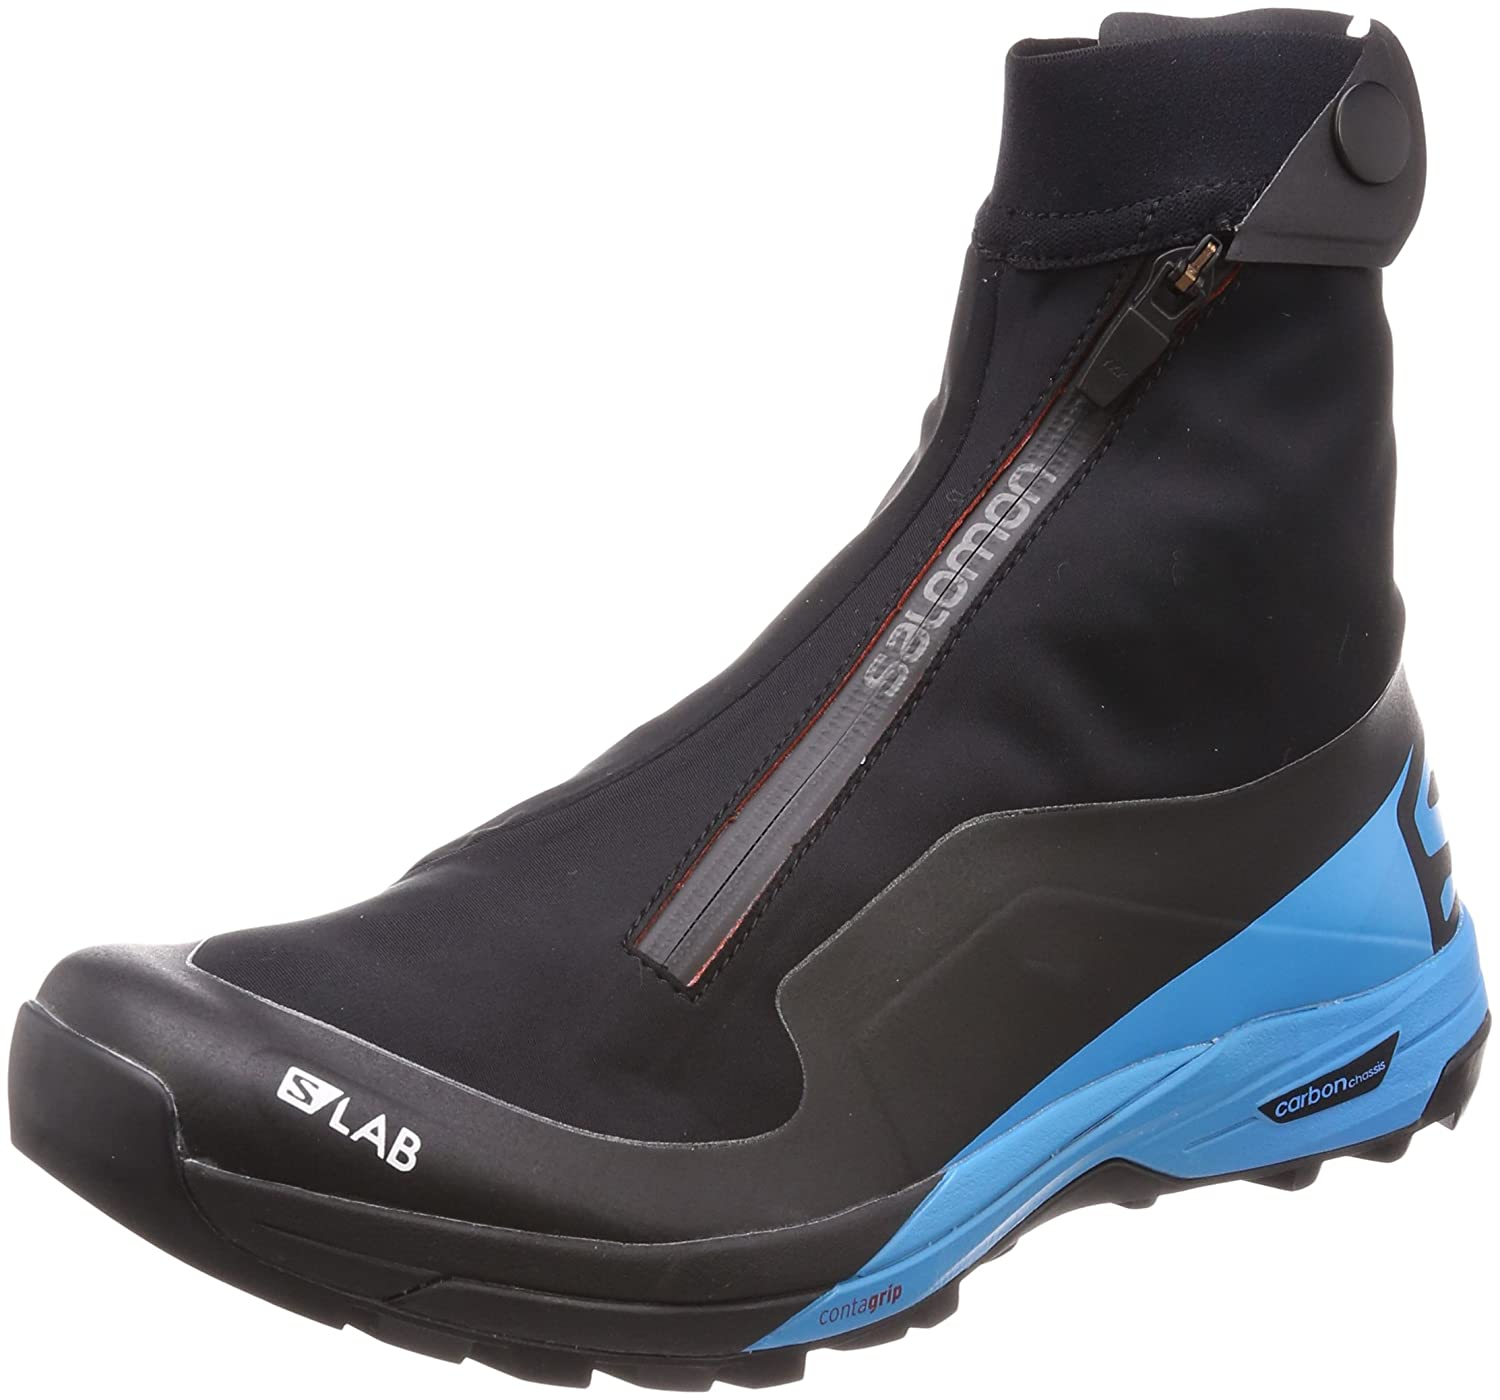 TALLA 44 2/3 EU. Salomon S/Lab XA Alpine 2, Zapatillas de Trail Running Unisex Adulto